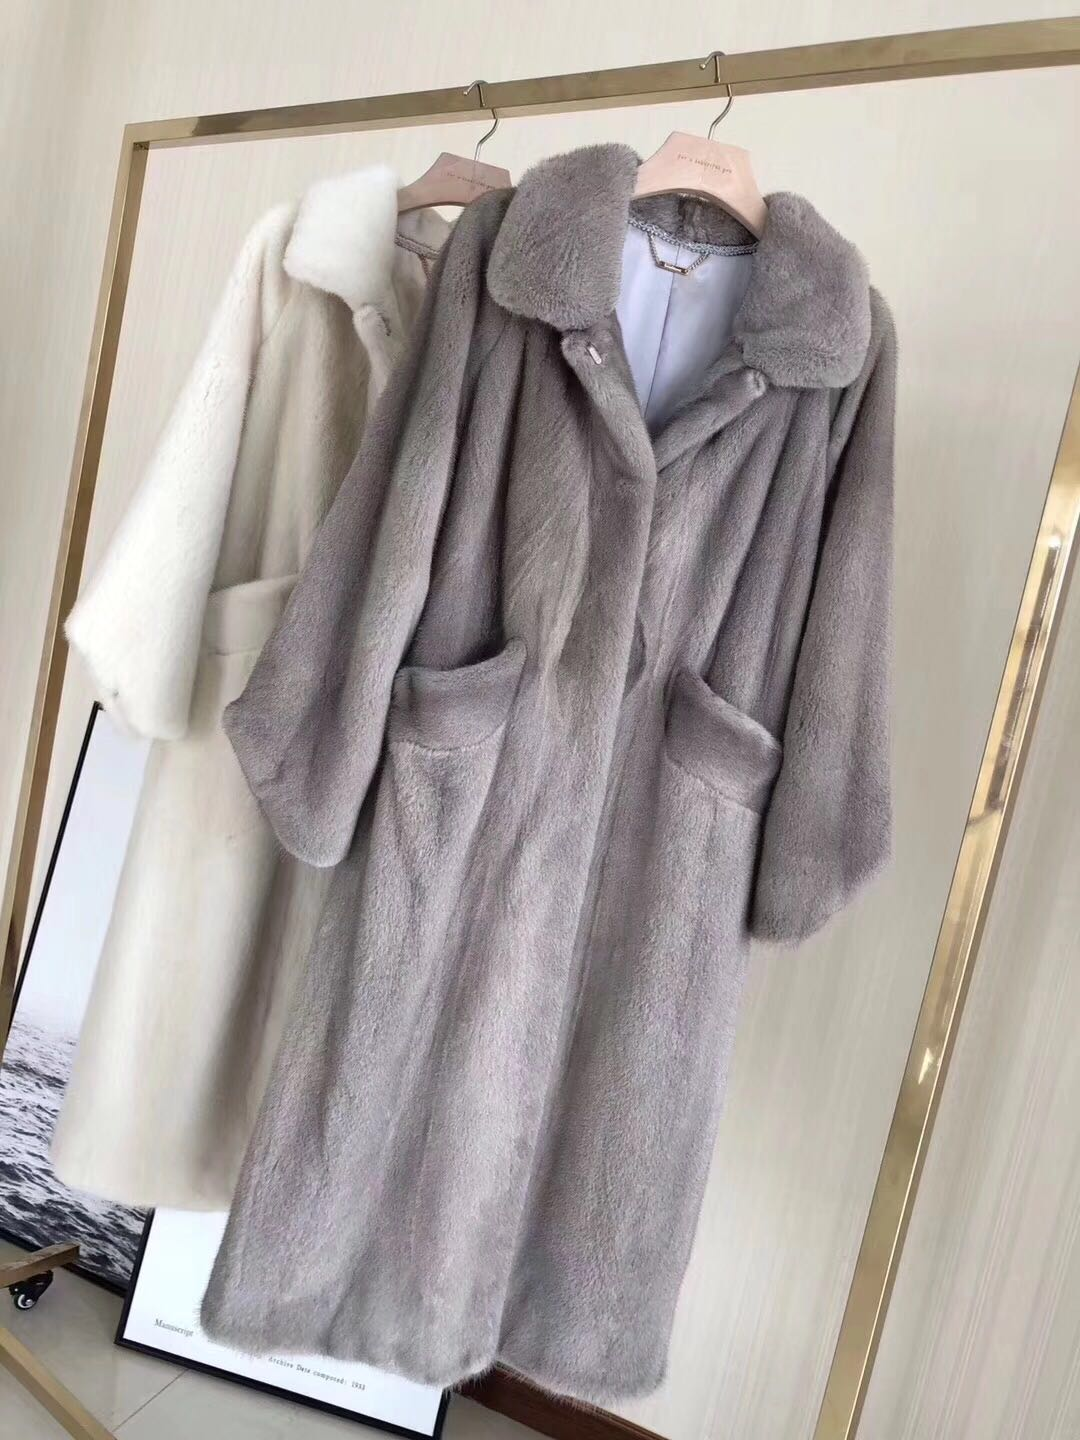 Long Color Outwear Veste Réel Naturel Manteau De Fourrure Picture 2018 Nouveau Femmes picture Color Vison qRywa8R7H